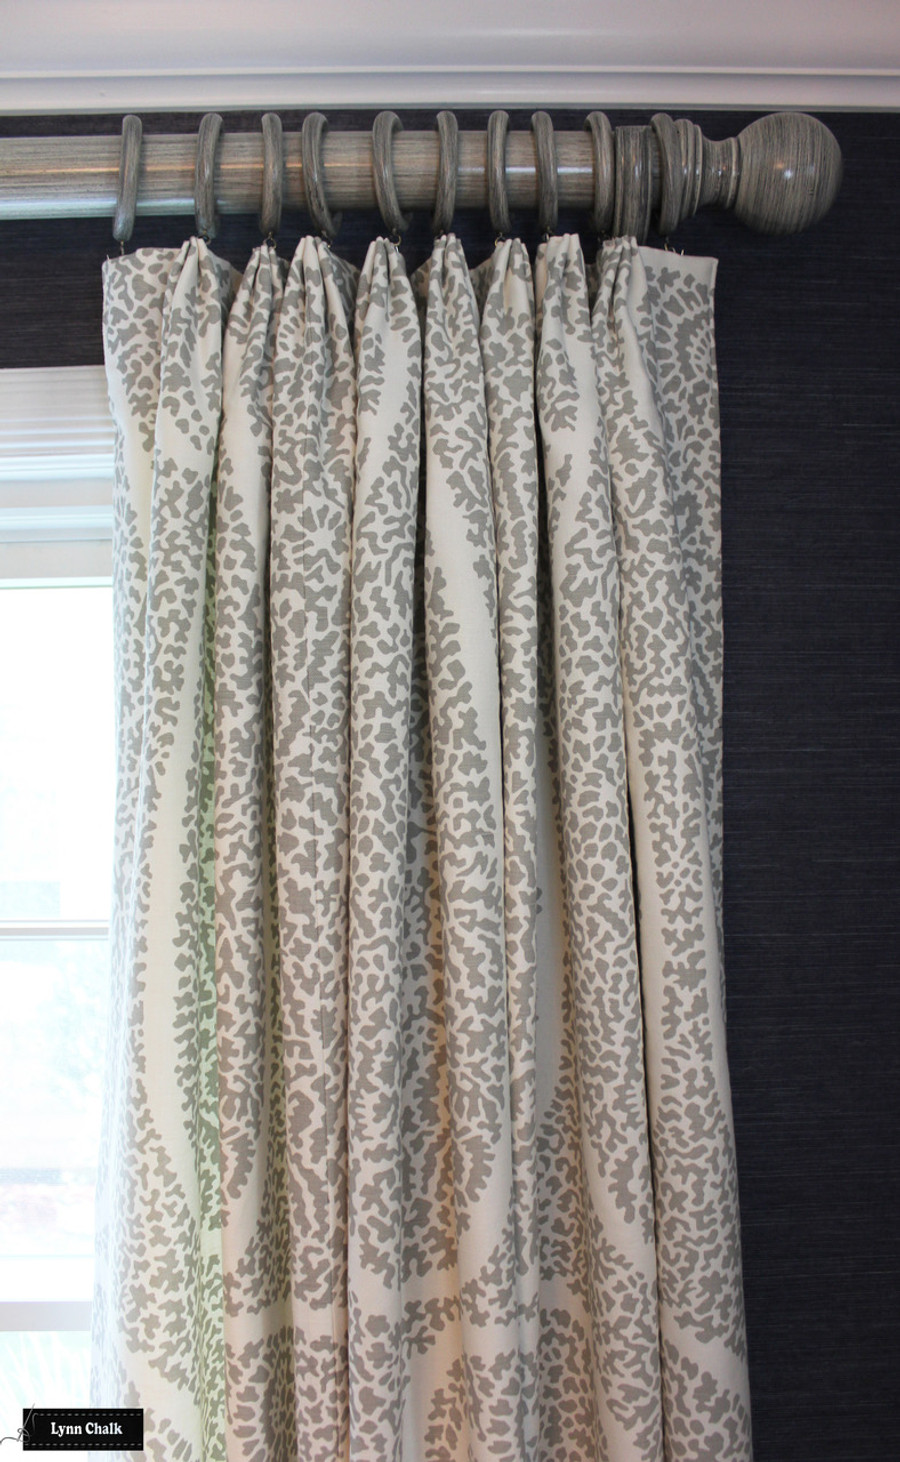 Schumacher Ambala Paisley Fog Drapes with Western Wood Supply Drapery Hardware Painted in Old Ivory.